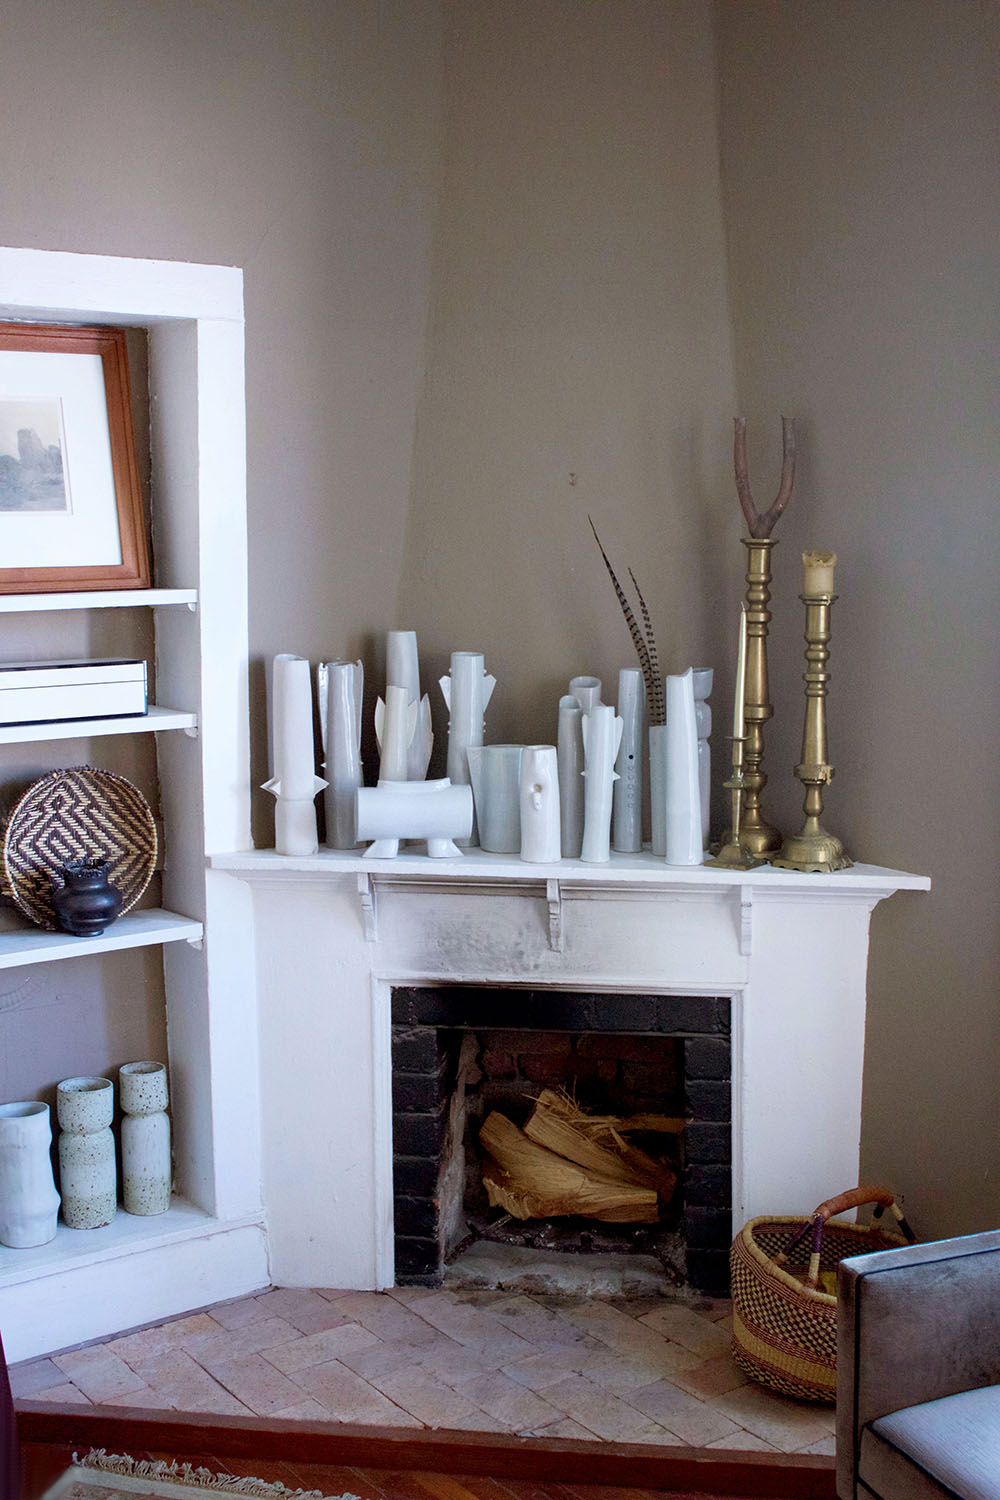 A collection of Amanda's most treasured hand-made ceramic vessels grace the fireplace mantel.